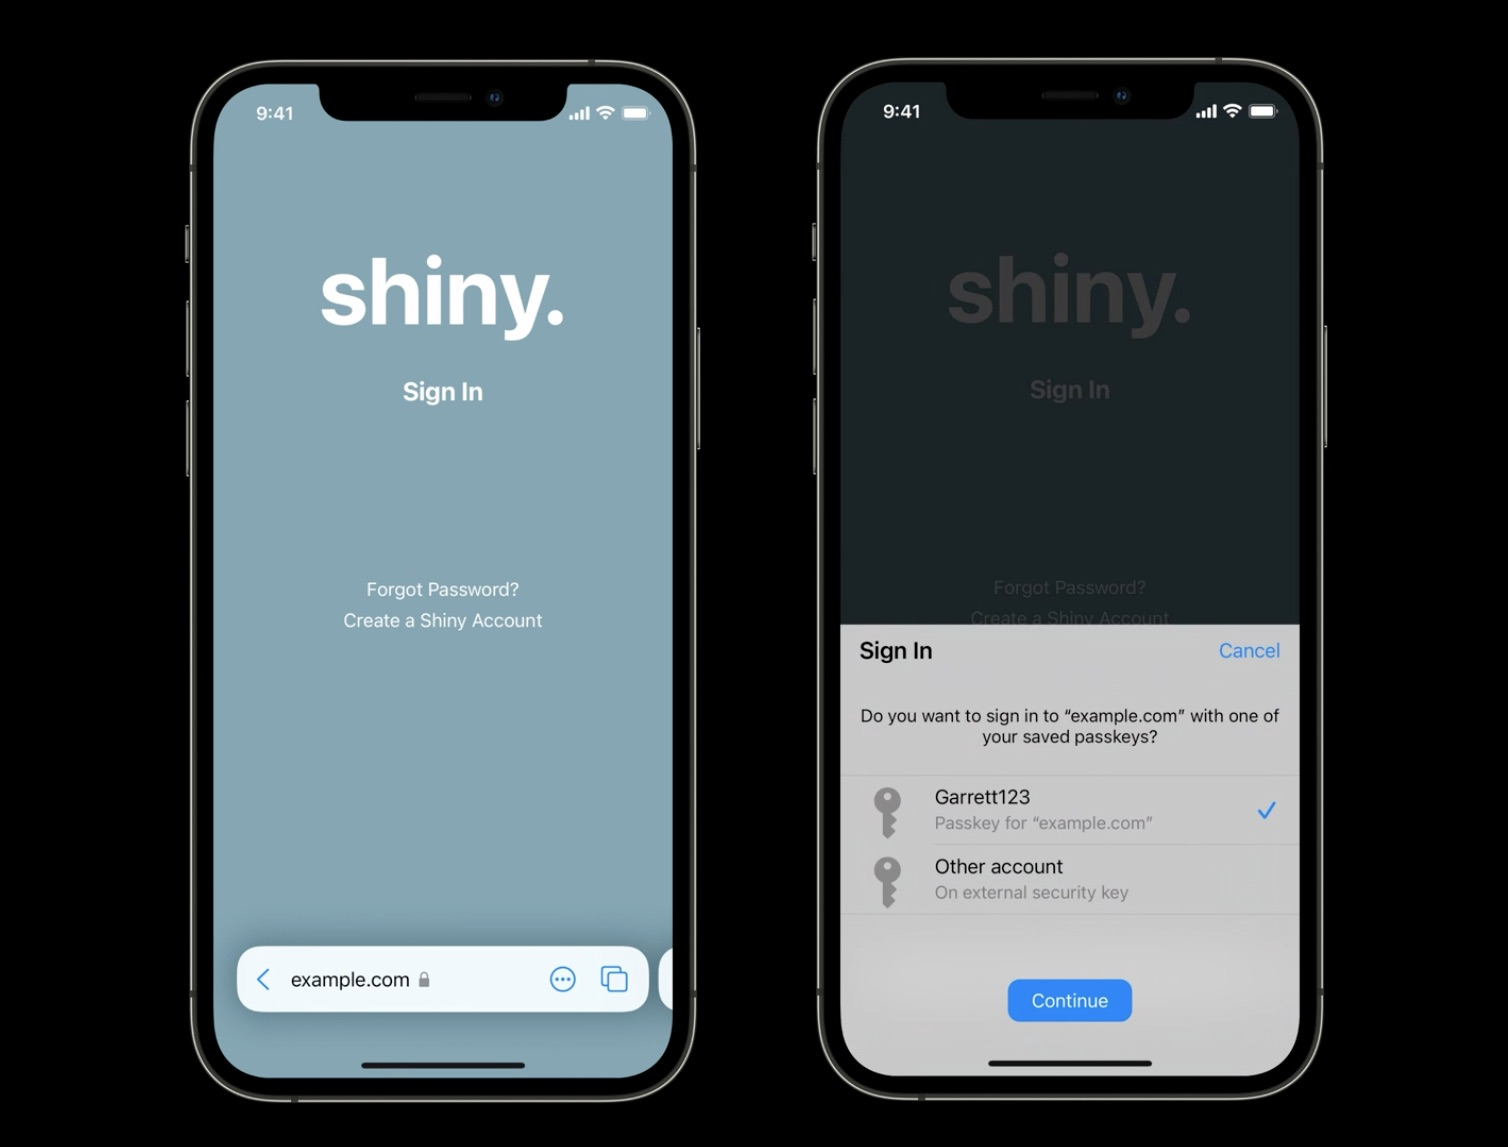 Apple Aiming to Eliminate Passwords With Face ID/Touch ID Passkeys